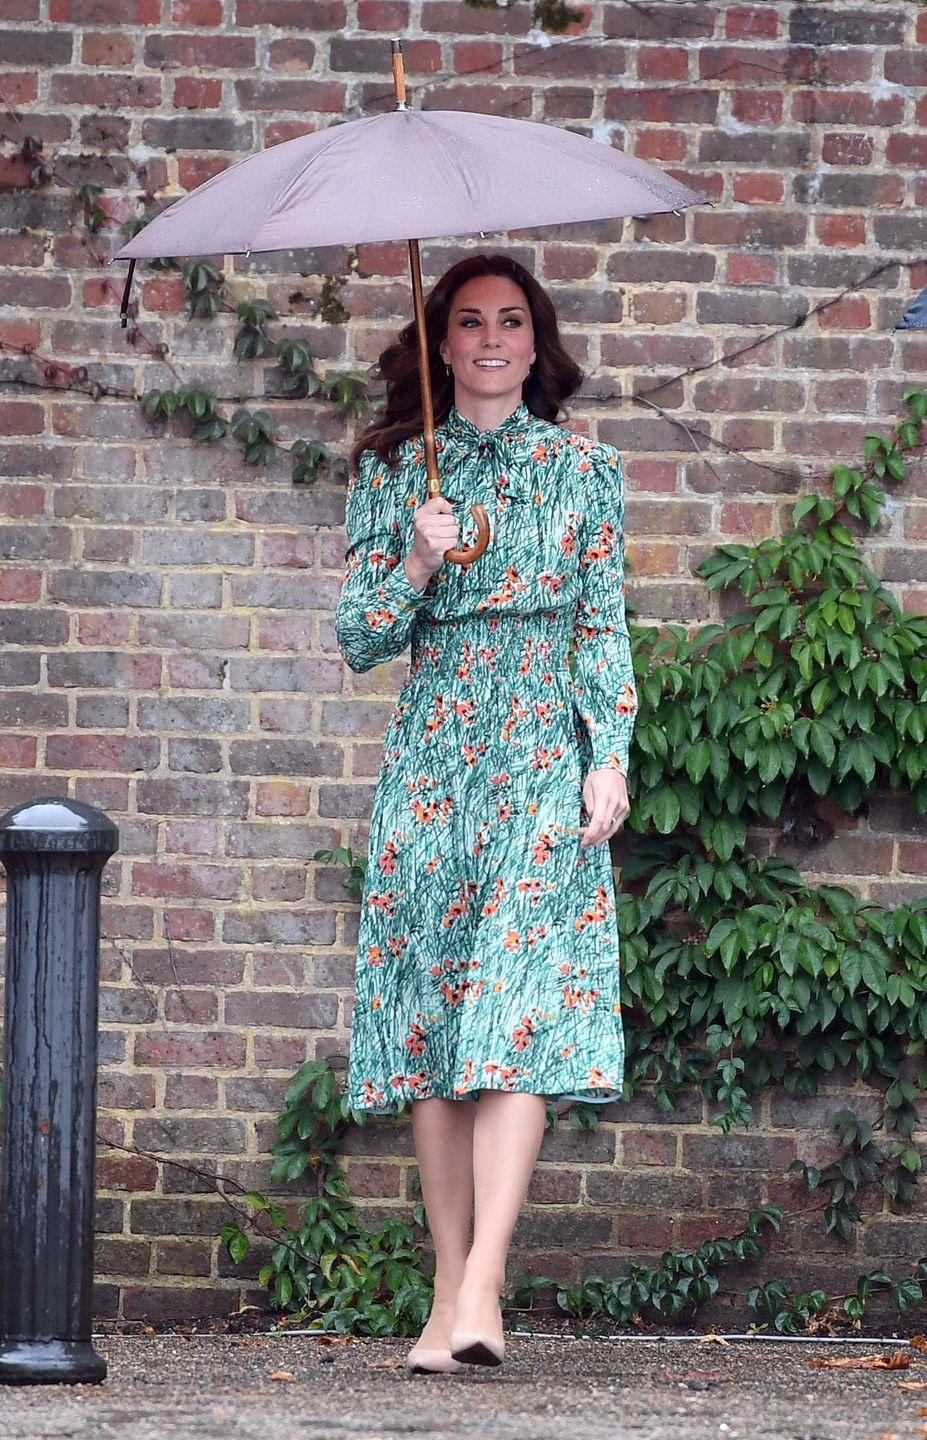 """<p>Kate chose a green tea-length Prada dress with poppy print for a visit to Diana's memorial garden on the 20th anniversary of her death in 2017. It's a subtle but lovely tribute to Diana, according to <em><a href=""""https://www.instyle.com/news/kate-middleton-prince-william-harry-diana-memorial-garden"""" rel=""""nofollow noopener"""" target=""""_blank"""" data-ylk=""""slk:InStyle"""" class=""""link rapid-noclick-resp"""">InStyle</a></em>, as poppies signify remembrance in the UK. The dress also featured a bow neckline, a style Diana often wore herself. </p>"""